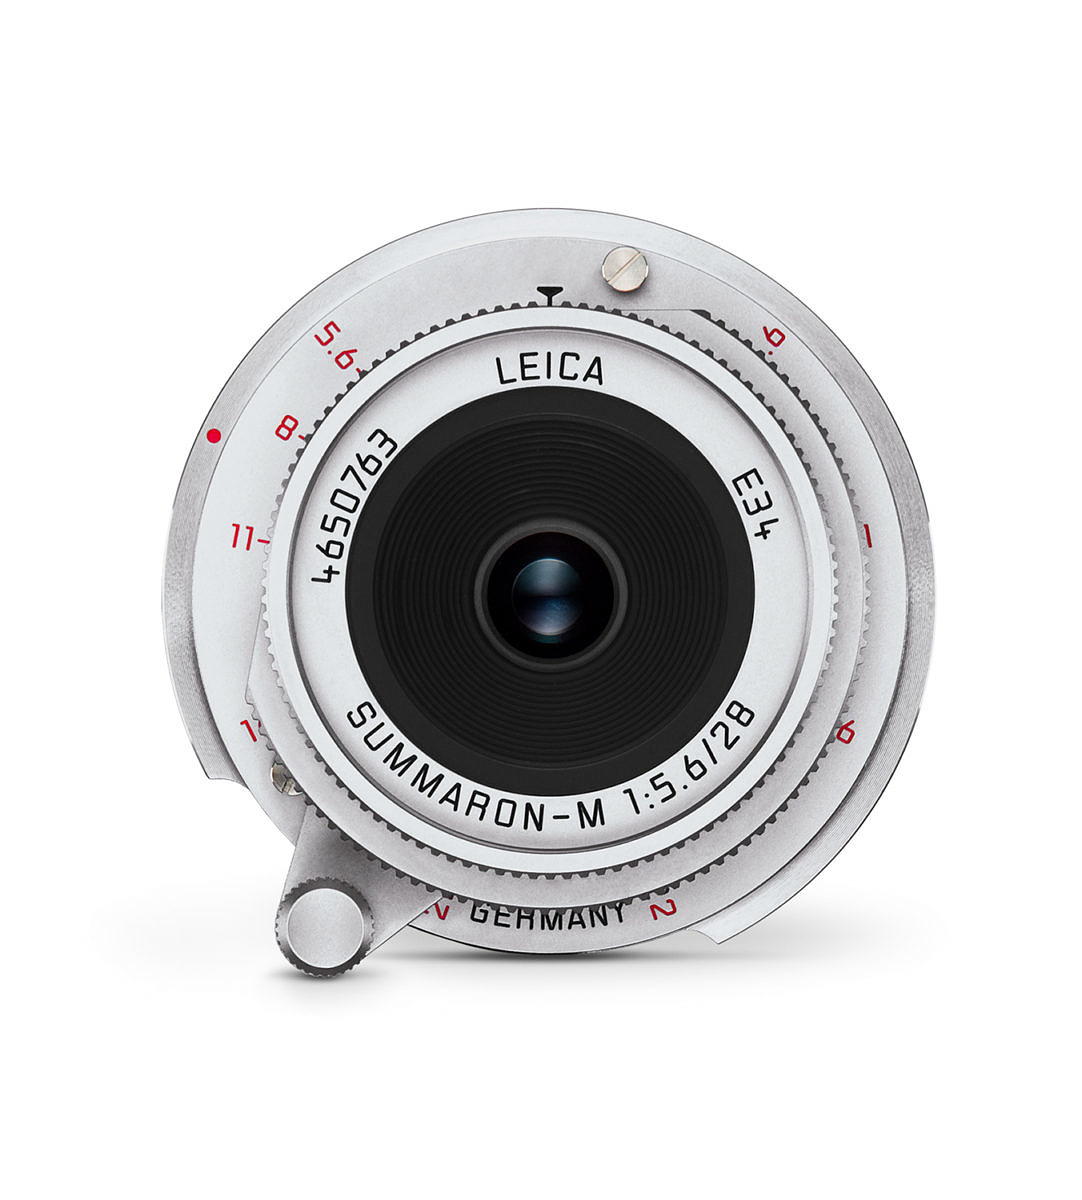 leica-summaron-m-56_28_top